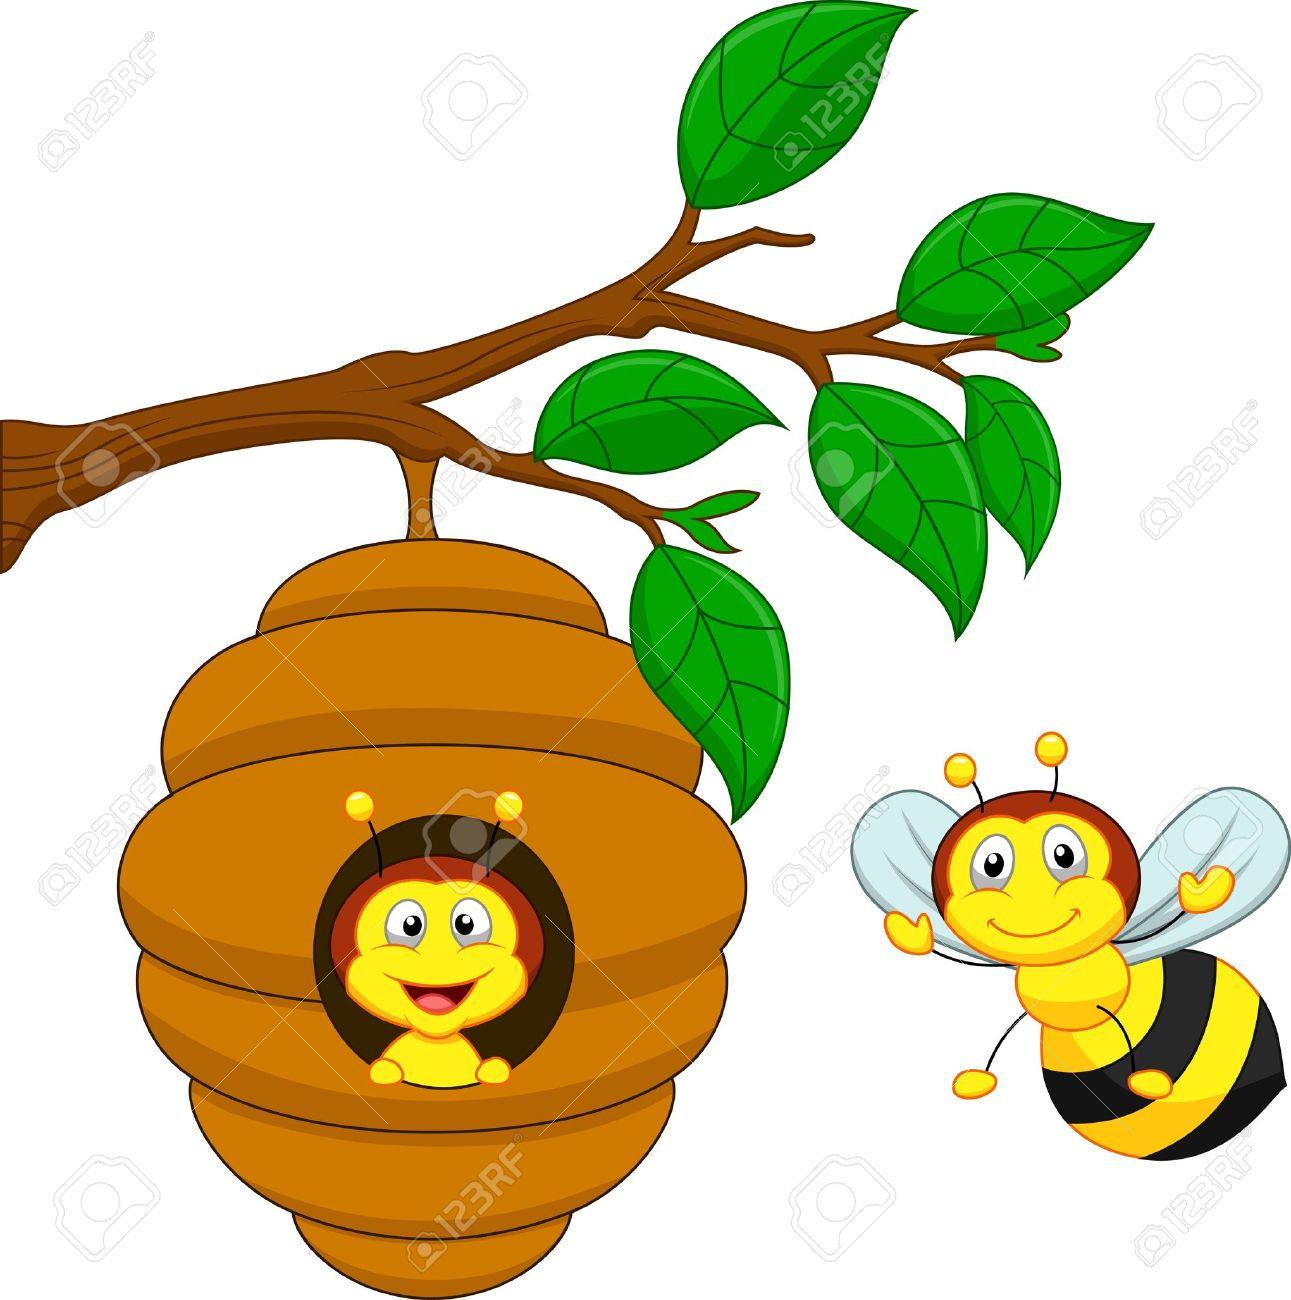 1291x1300 Cartoon A Honey Bee Comb Royalty Free Cliparts, Vectors,